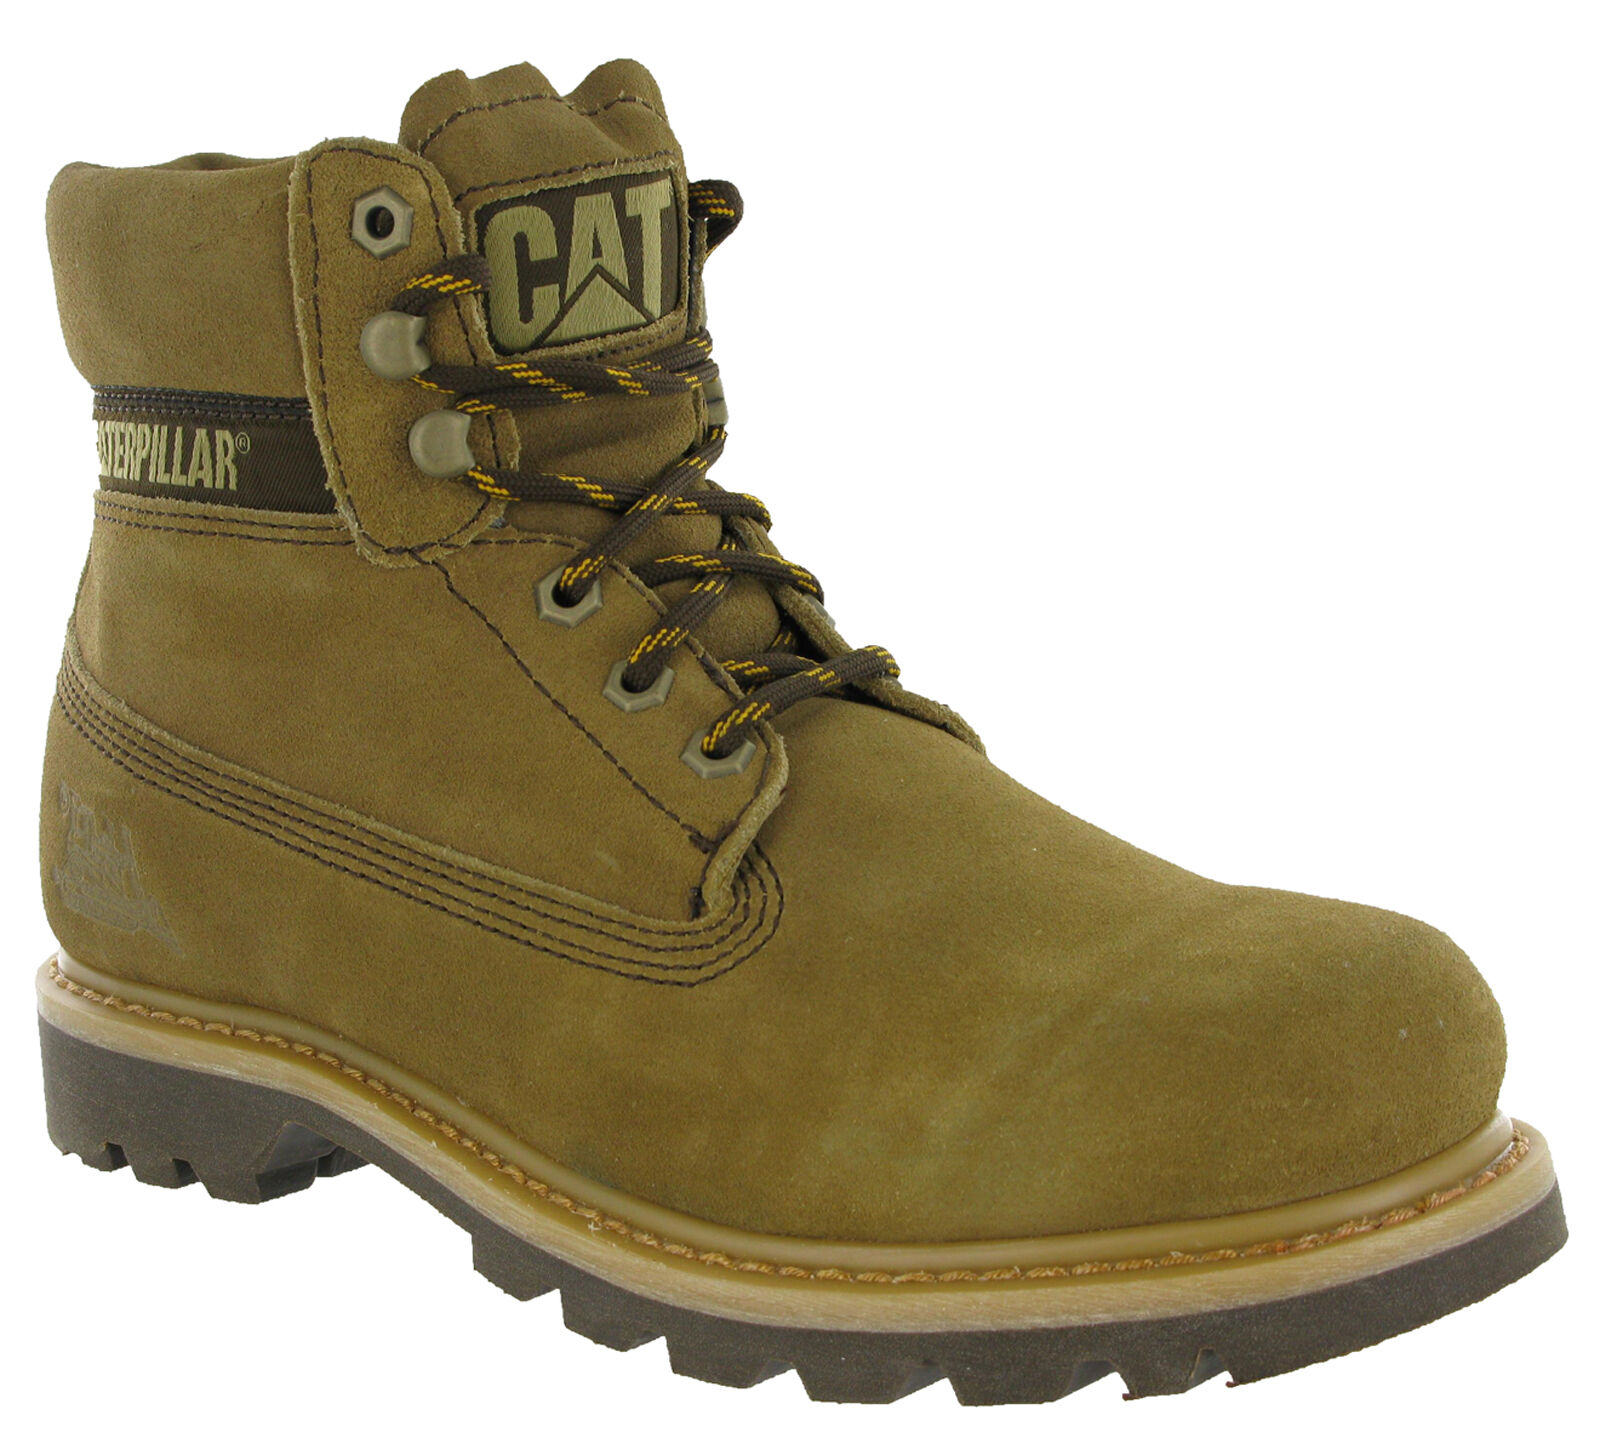 Caterpillar Colorado CAT Boots Leather Mud Ankle Wide Lace CAT Colorado Mens Work Boots 1421fa